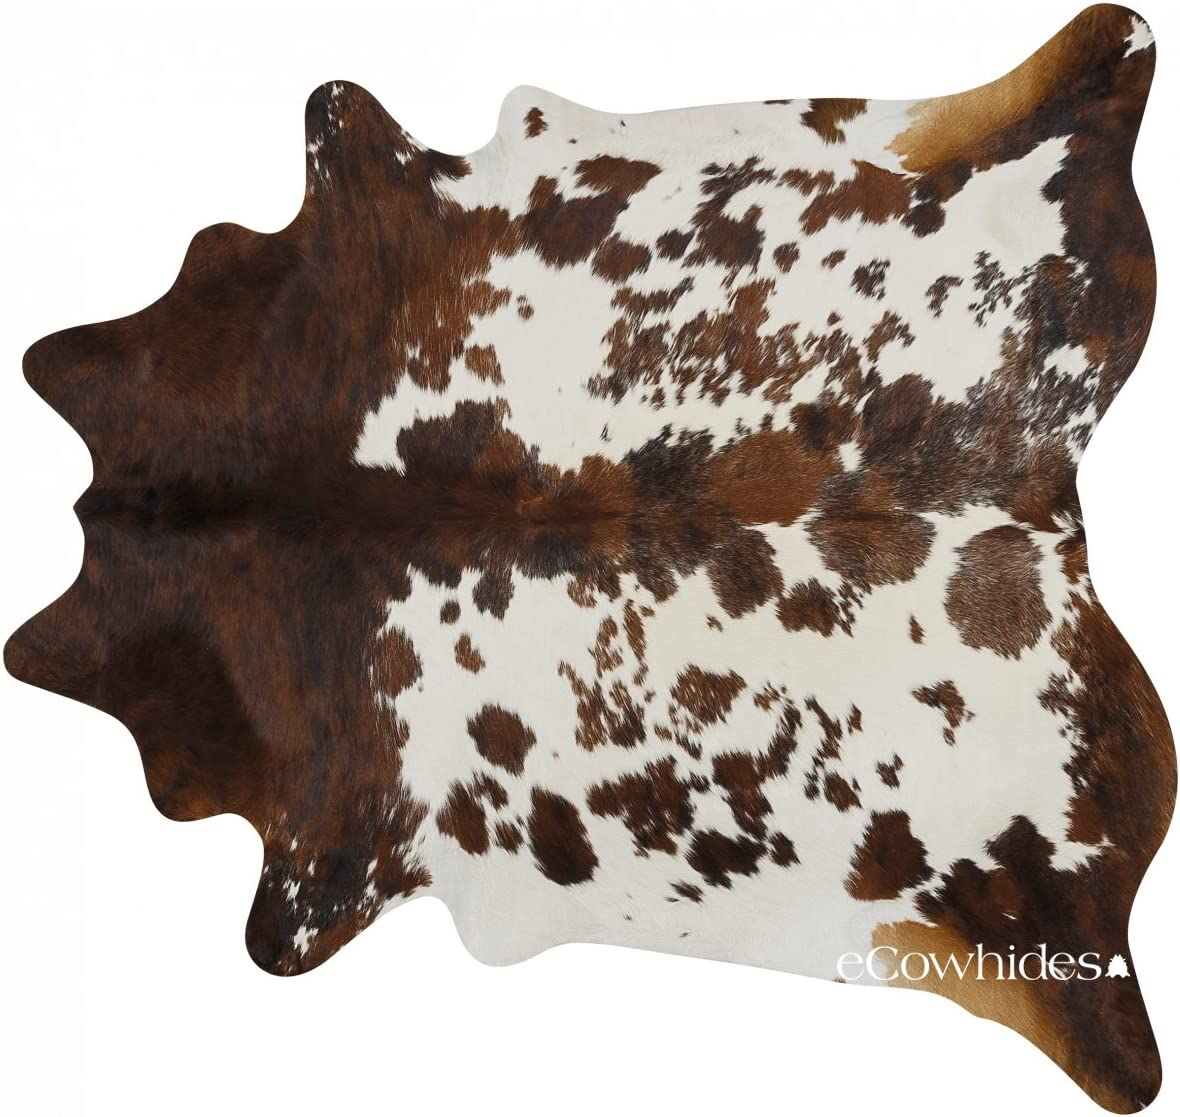 eCowhides Tricolor Brazilian Cowhide Area Rug, Cowskin Leather Hide for Home Living Room XL 7 x 6 ft